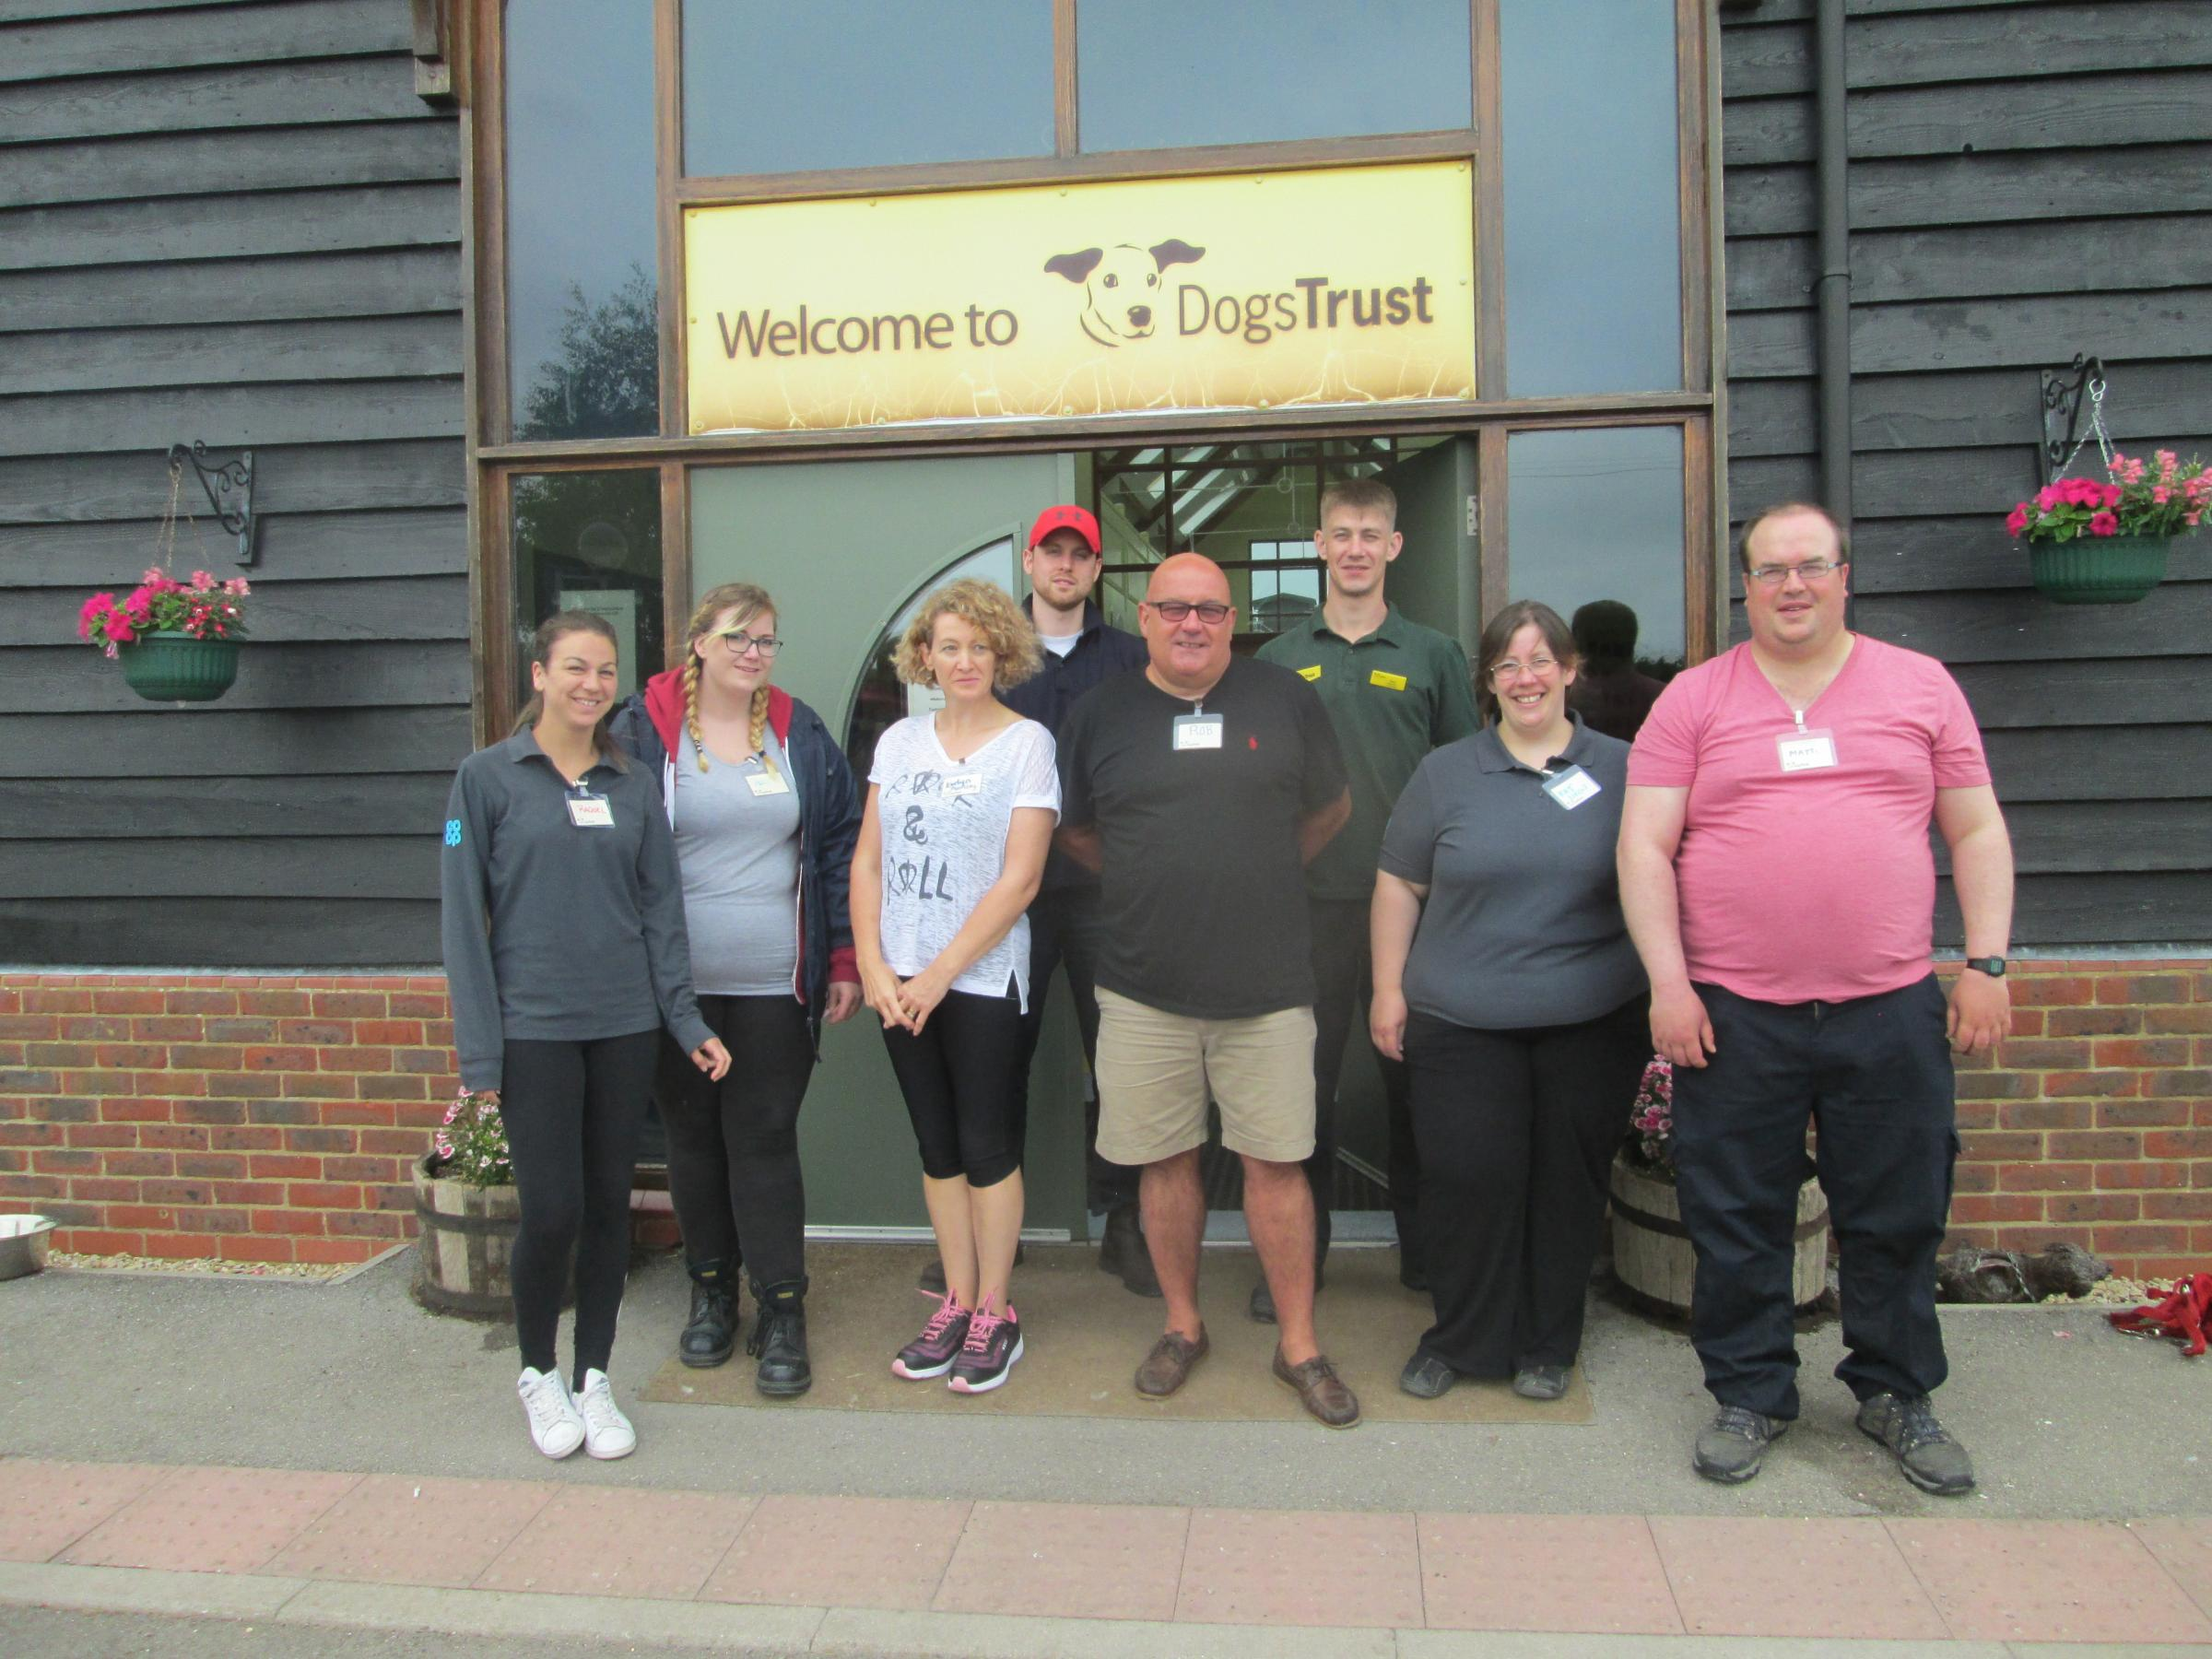 The team from the Co-op distribution centre out Dogs Trust